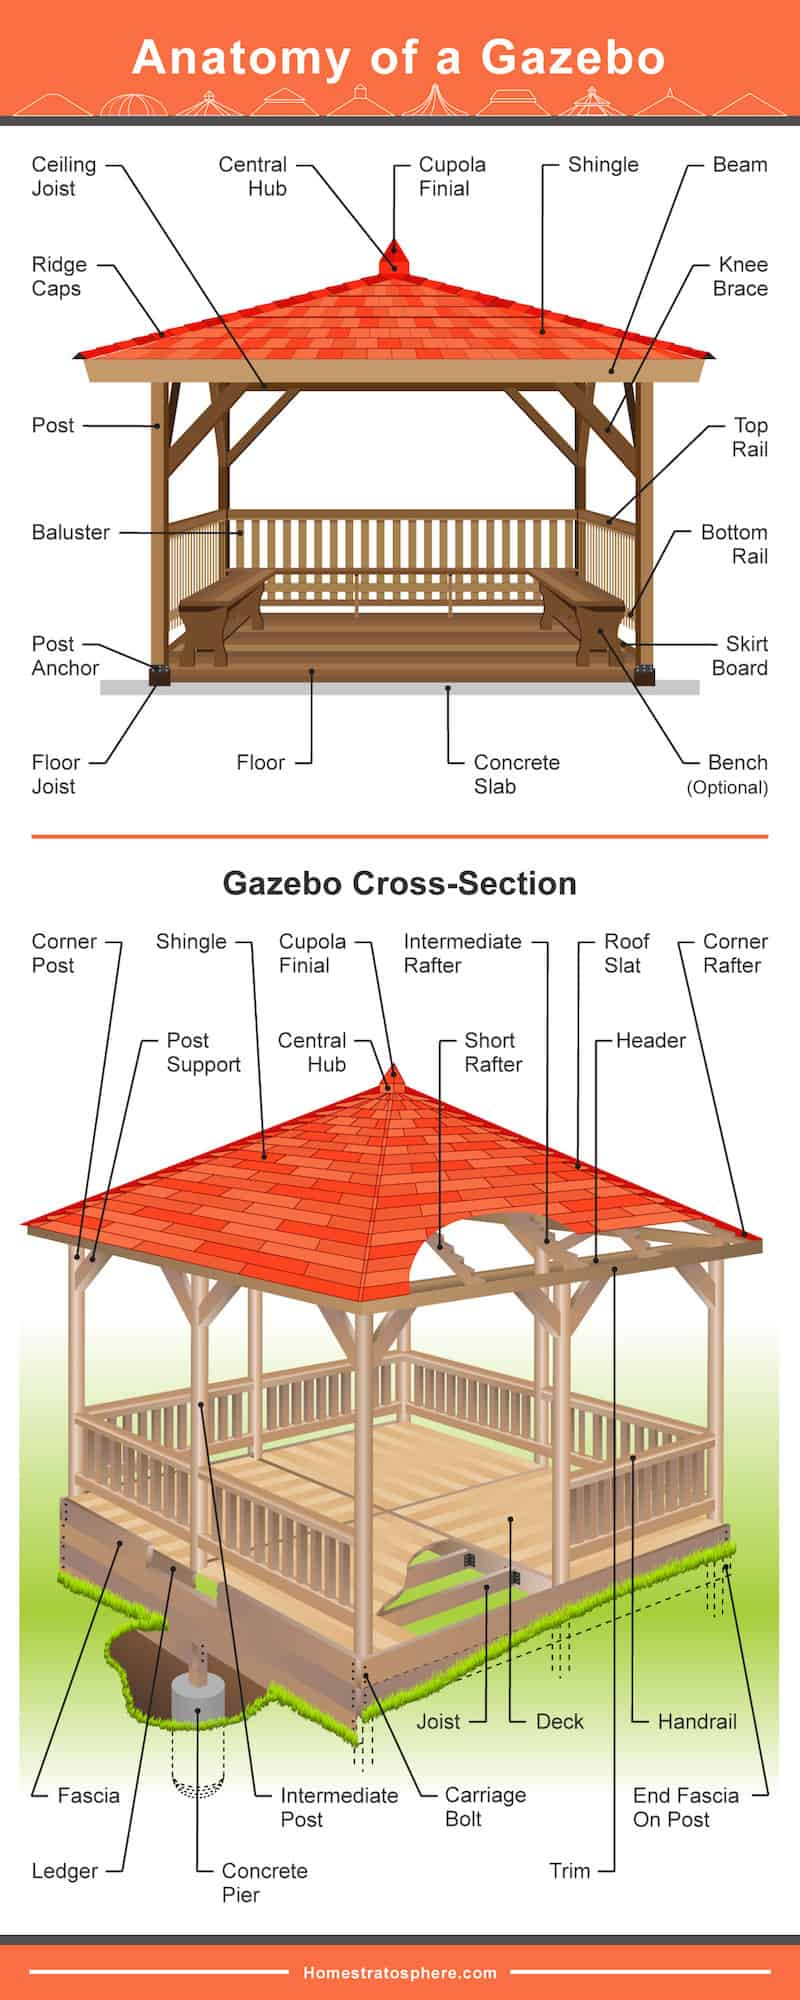 Diagram showing the anatomy of a gazebo